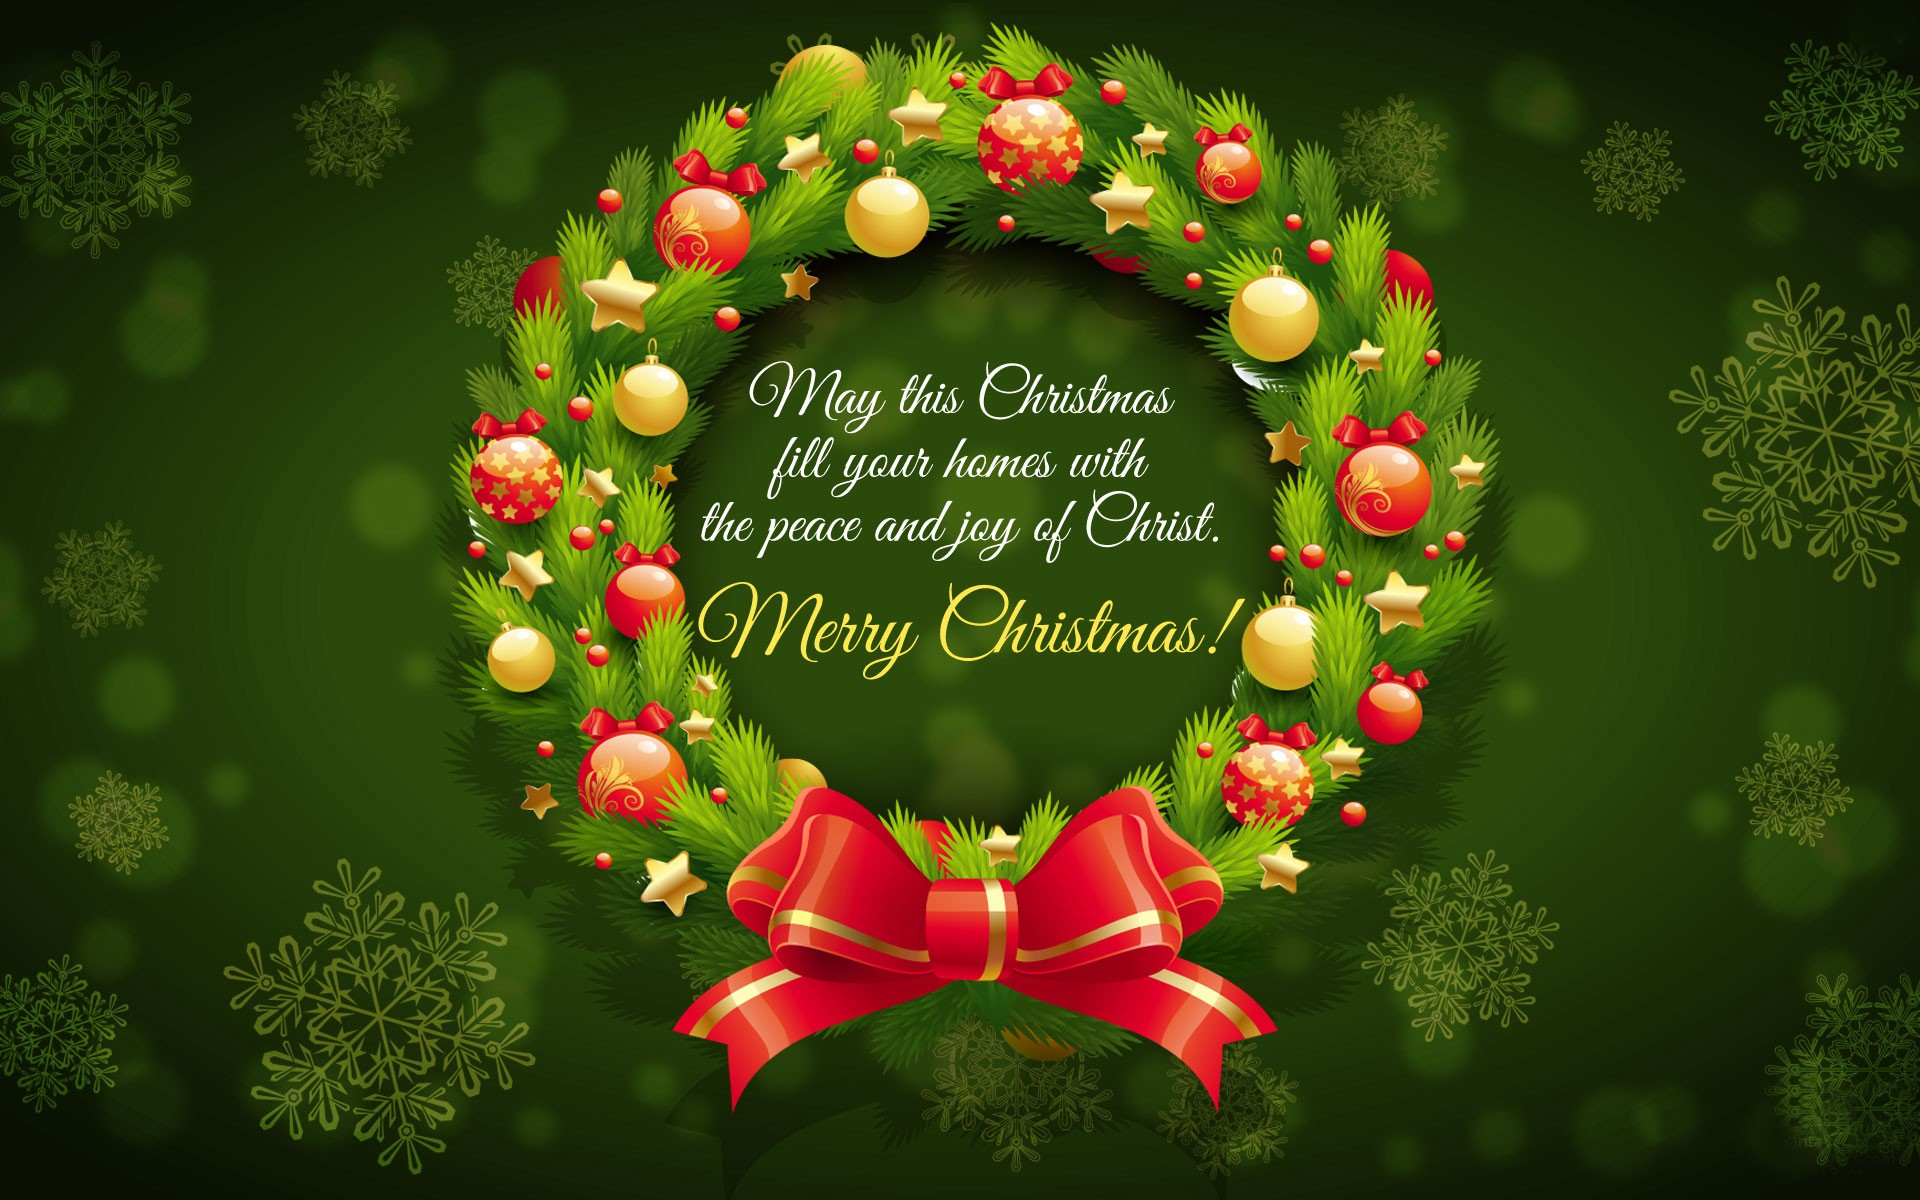 Pictures greetings for christmas christmas day greetings christmas wishes greeting m4hsunfo